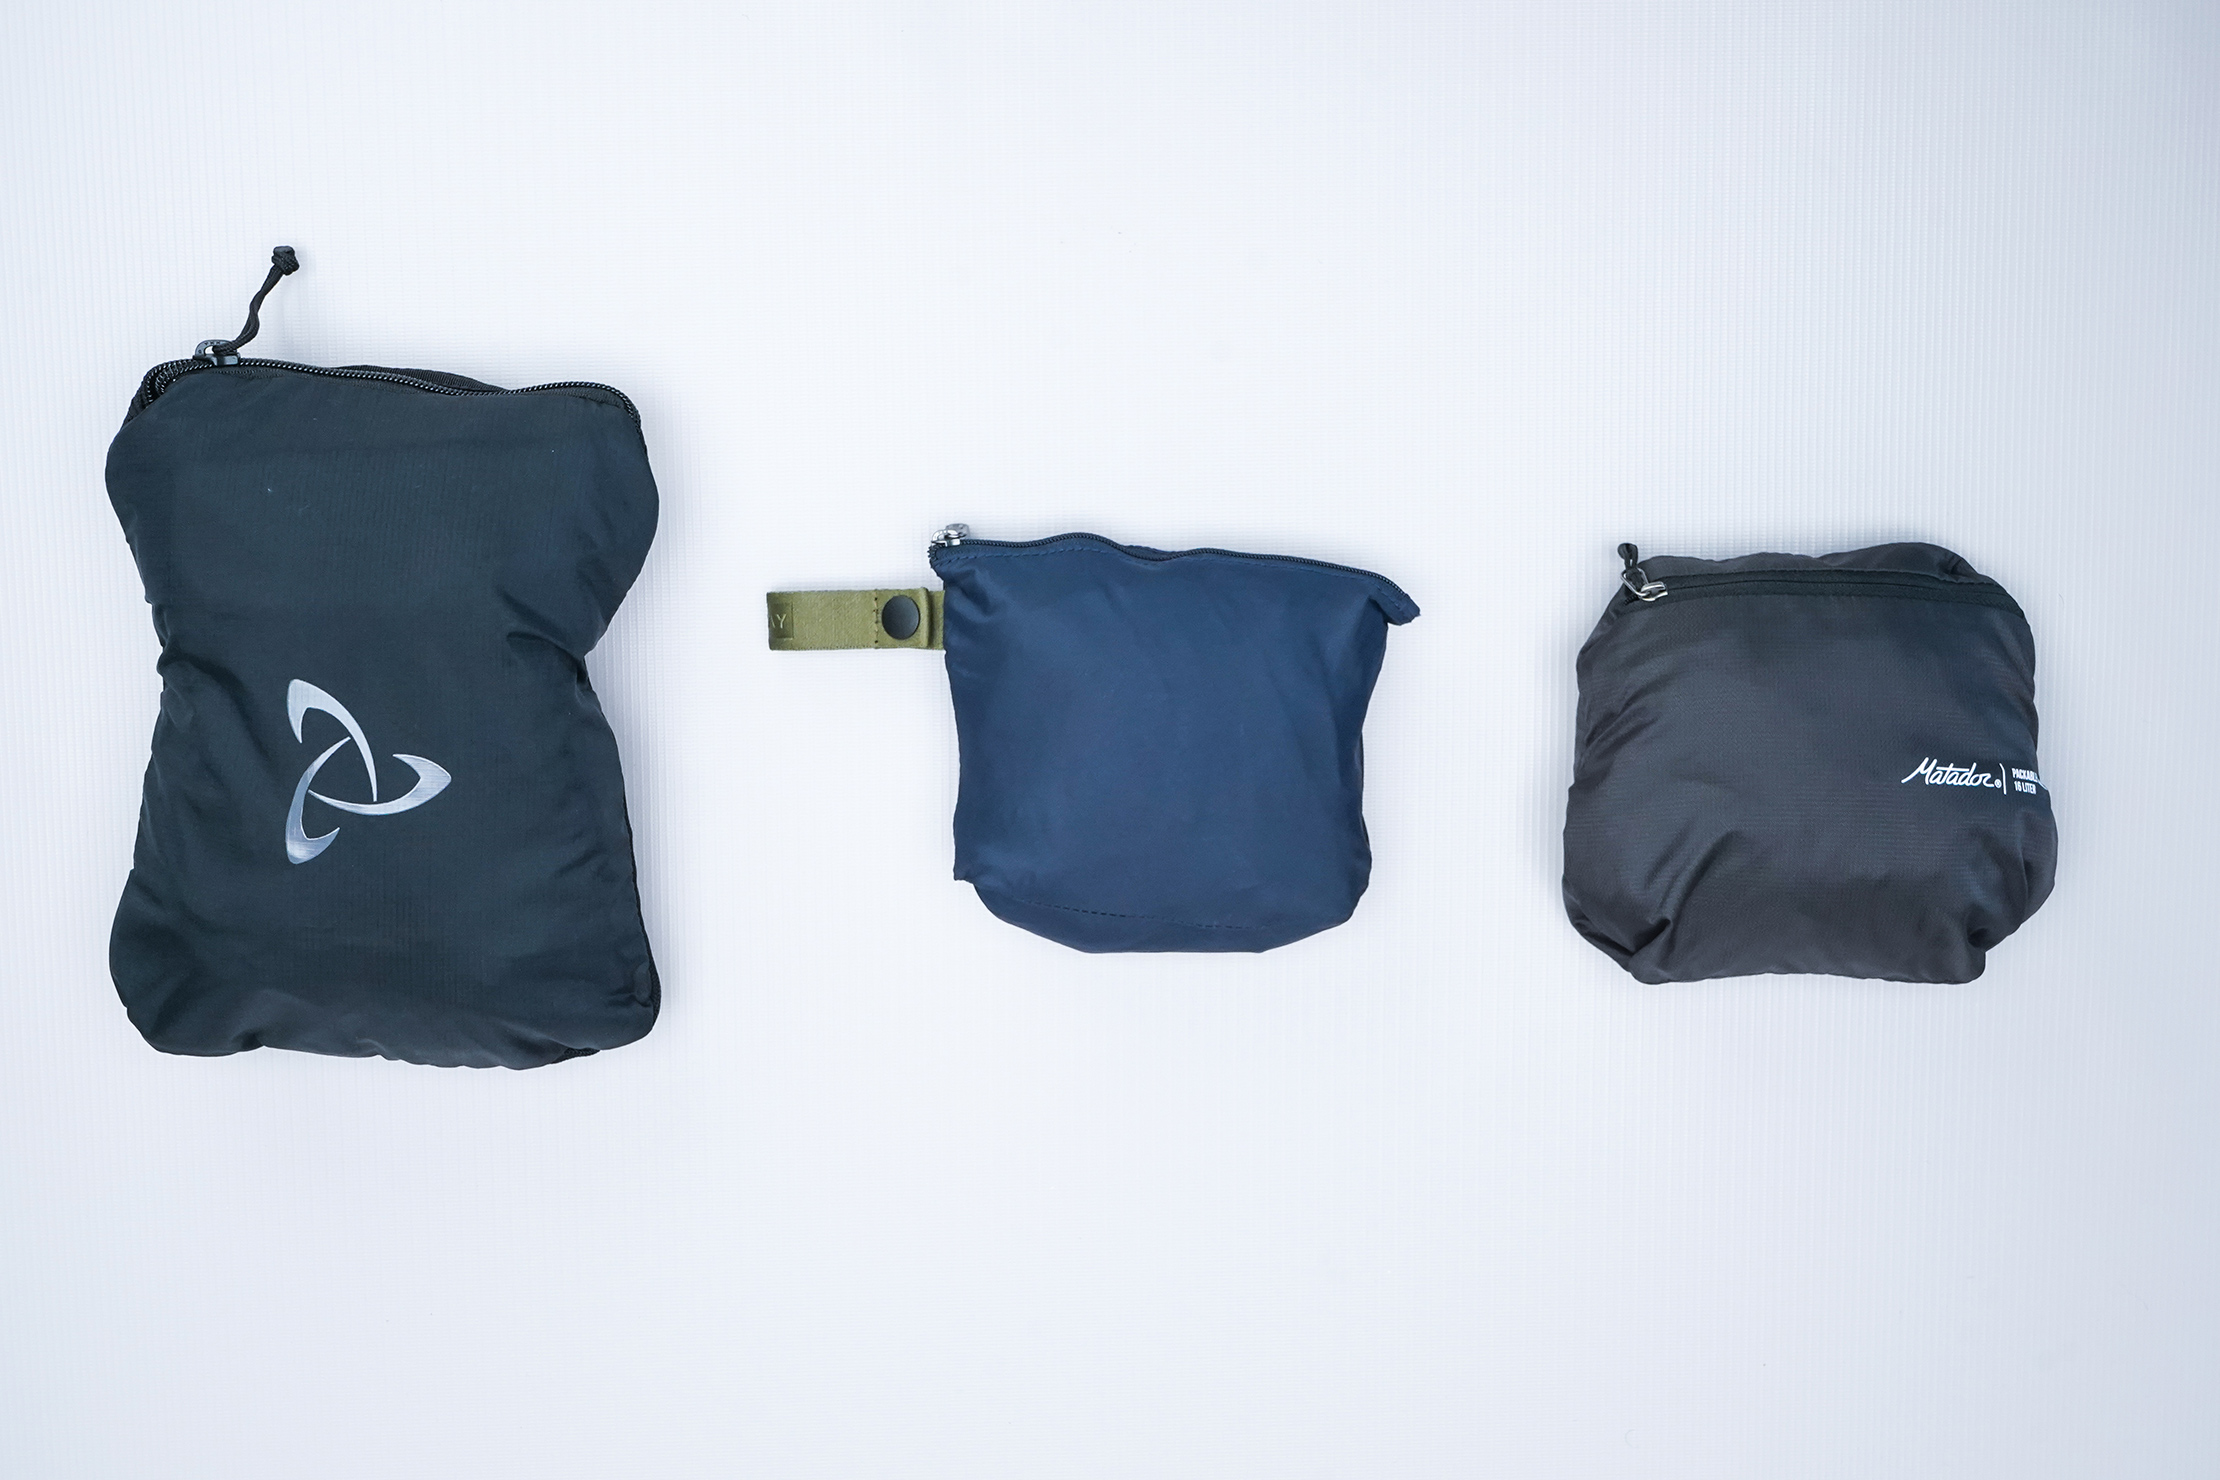 Away Packable Backpack Top Comparison